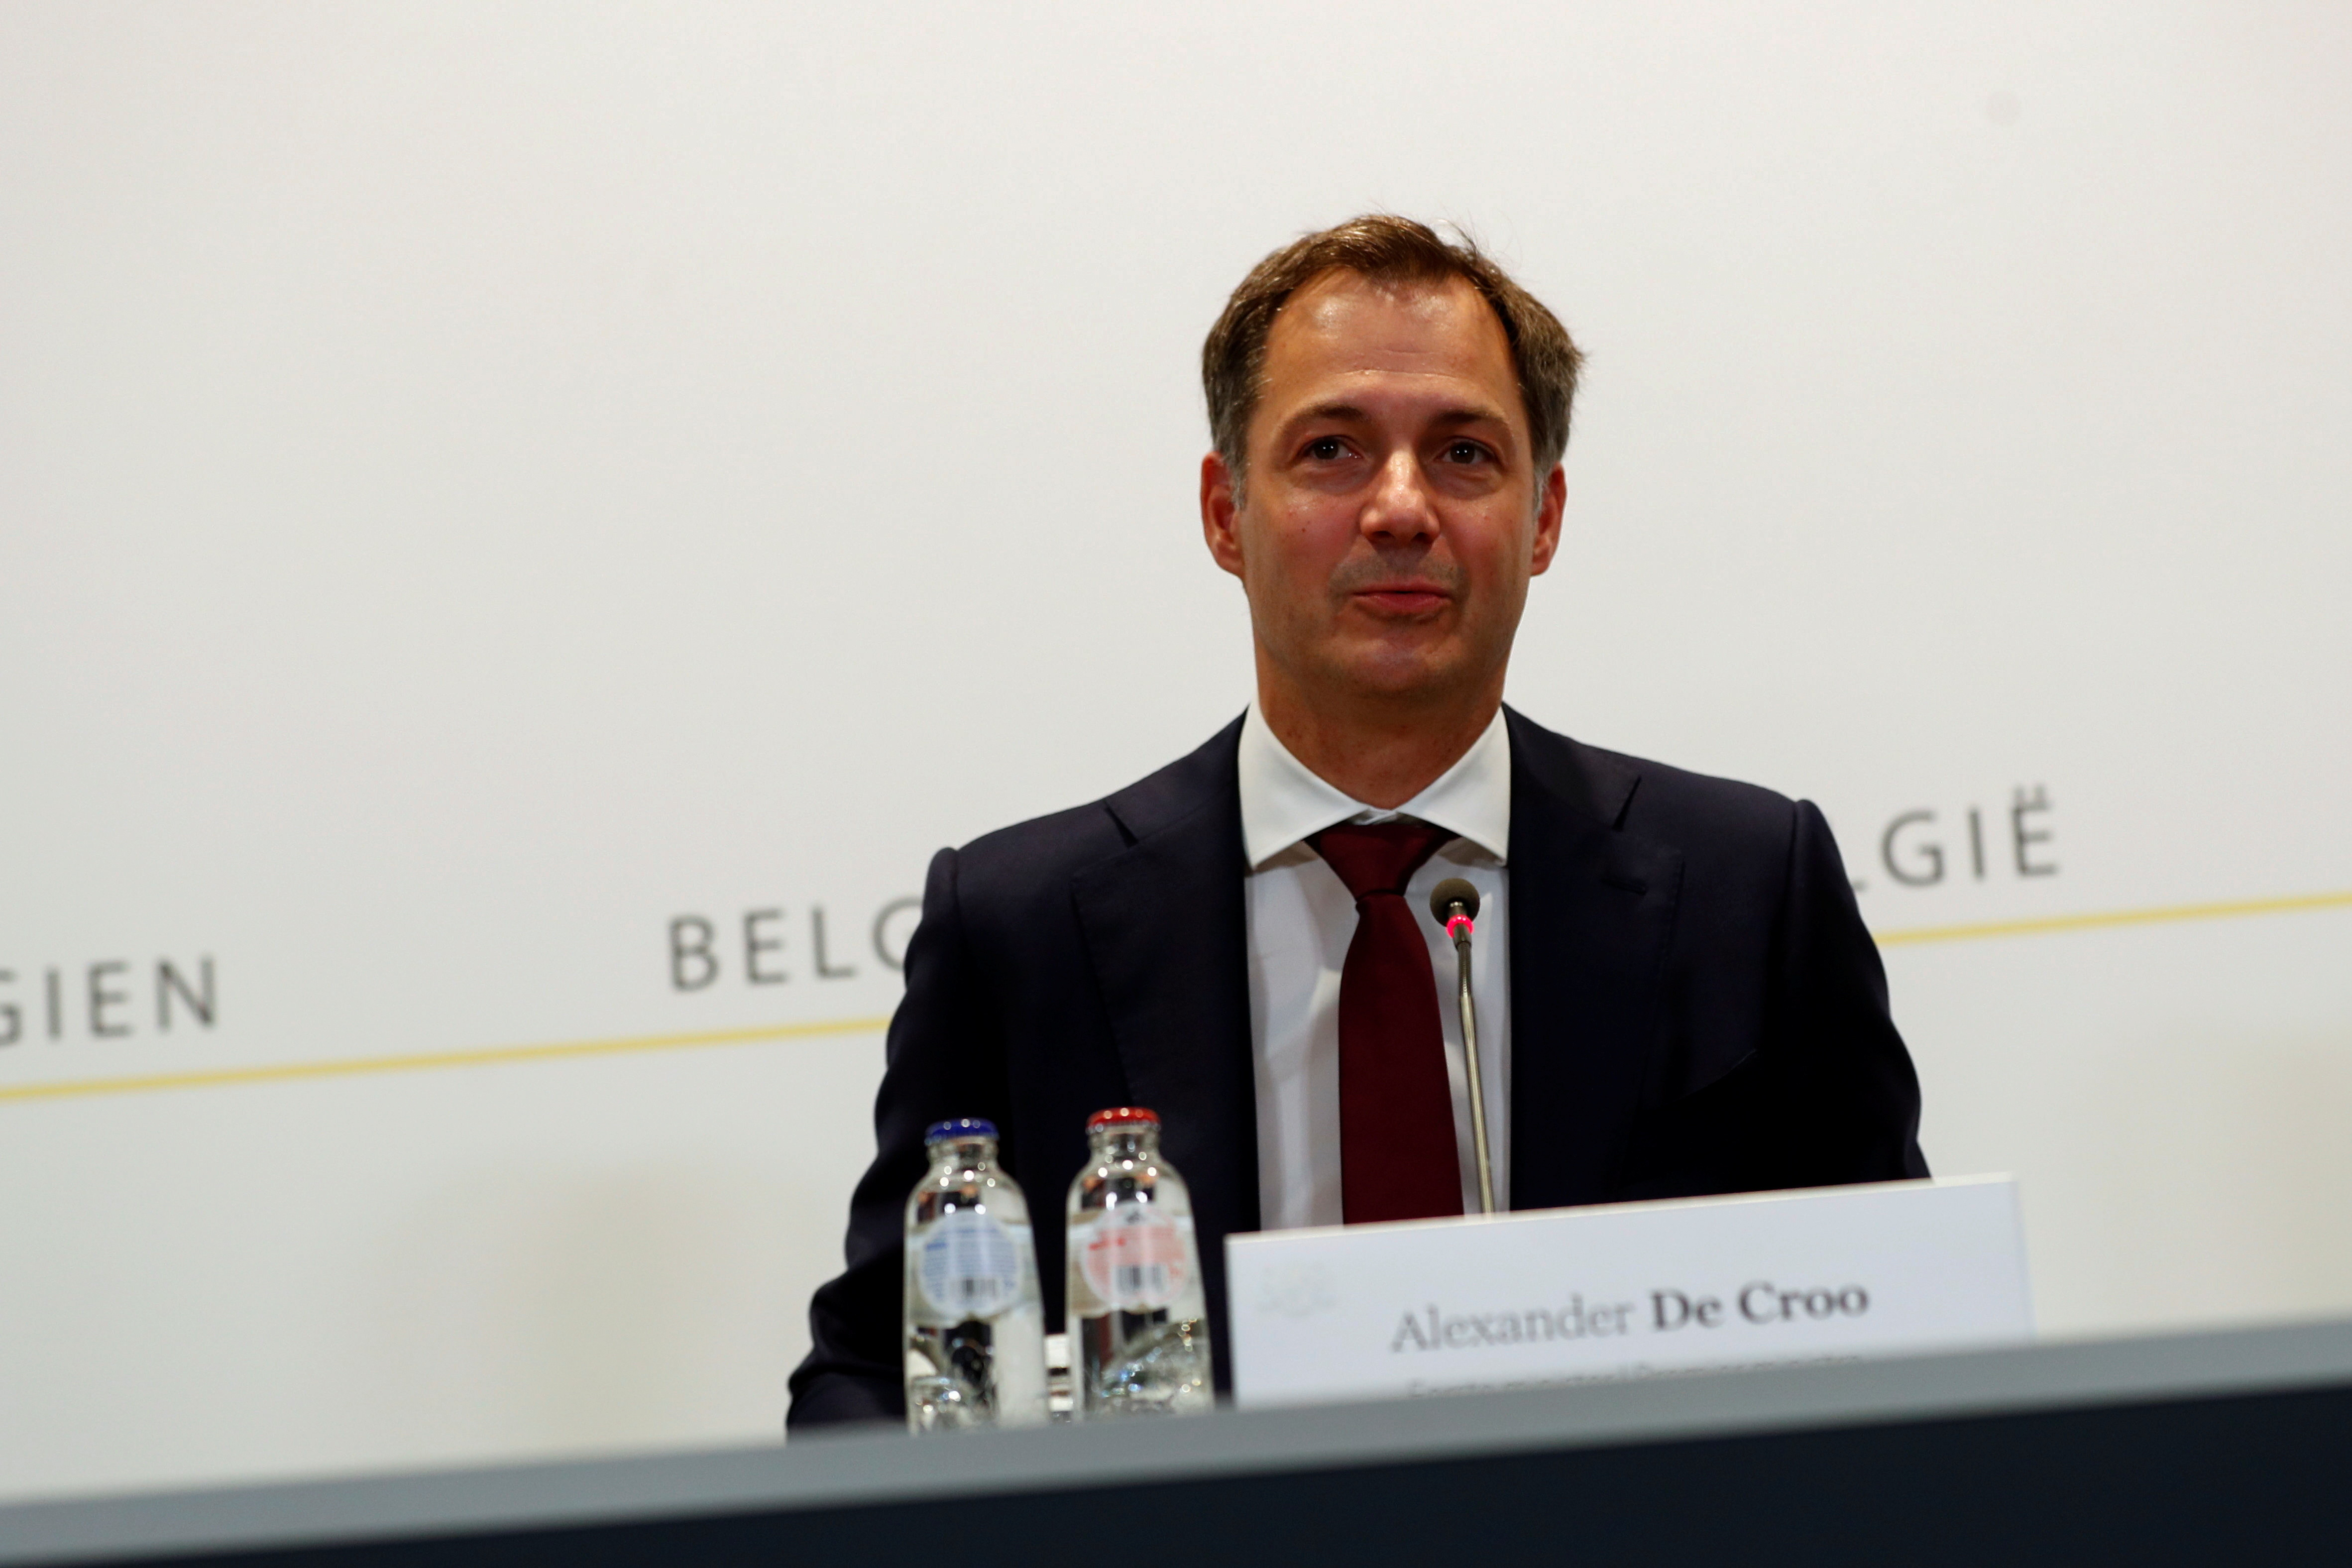 Belgium's Prime Minister Alexander De Croo attends a news conference after a government meeting to announce the new coronavirus disease (COVID-19) related measures in Brussels, Belgium June 4, 2021.